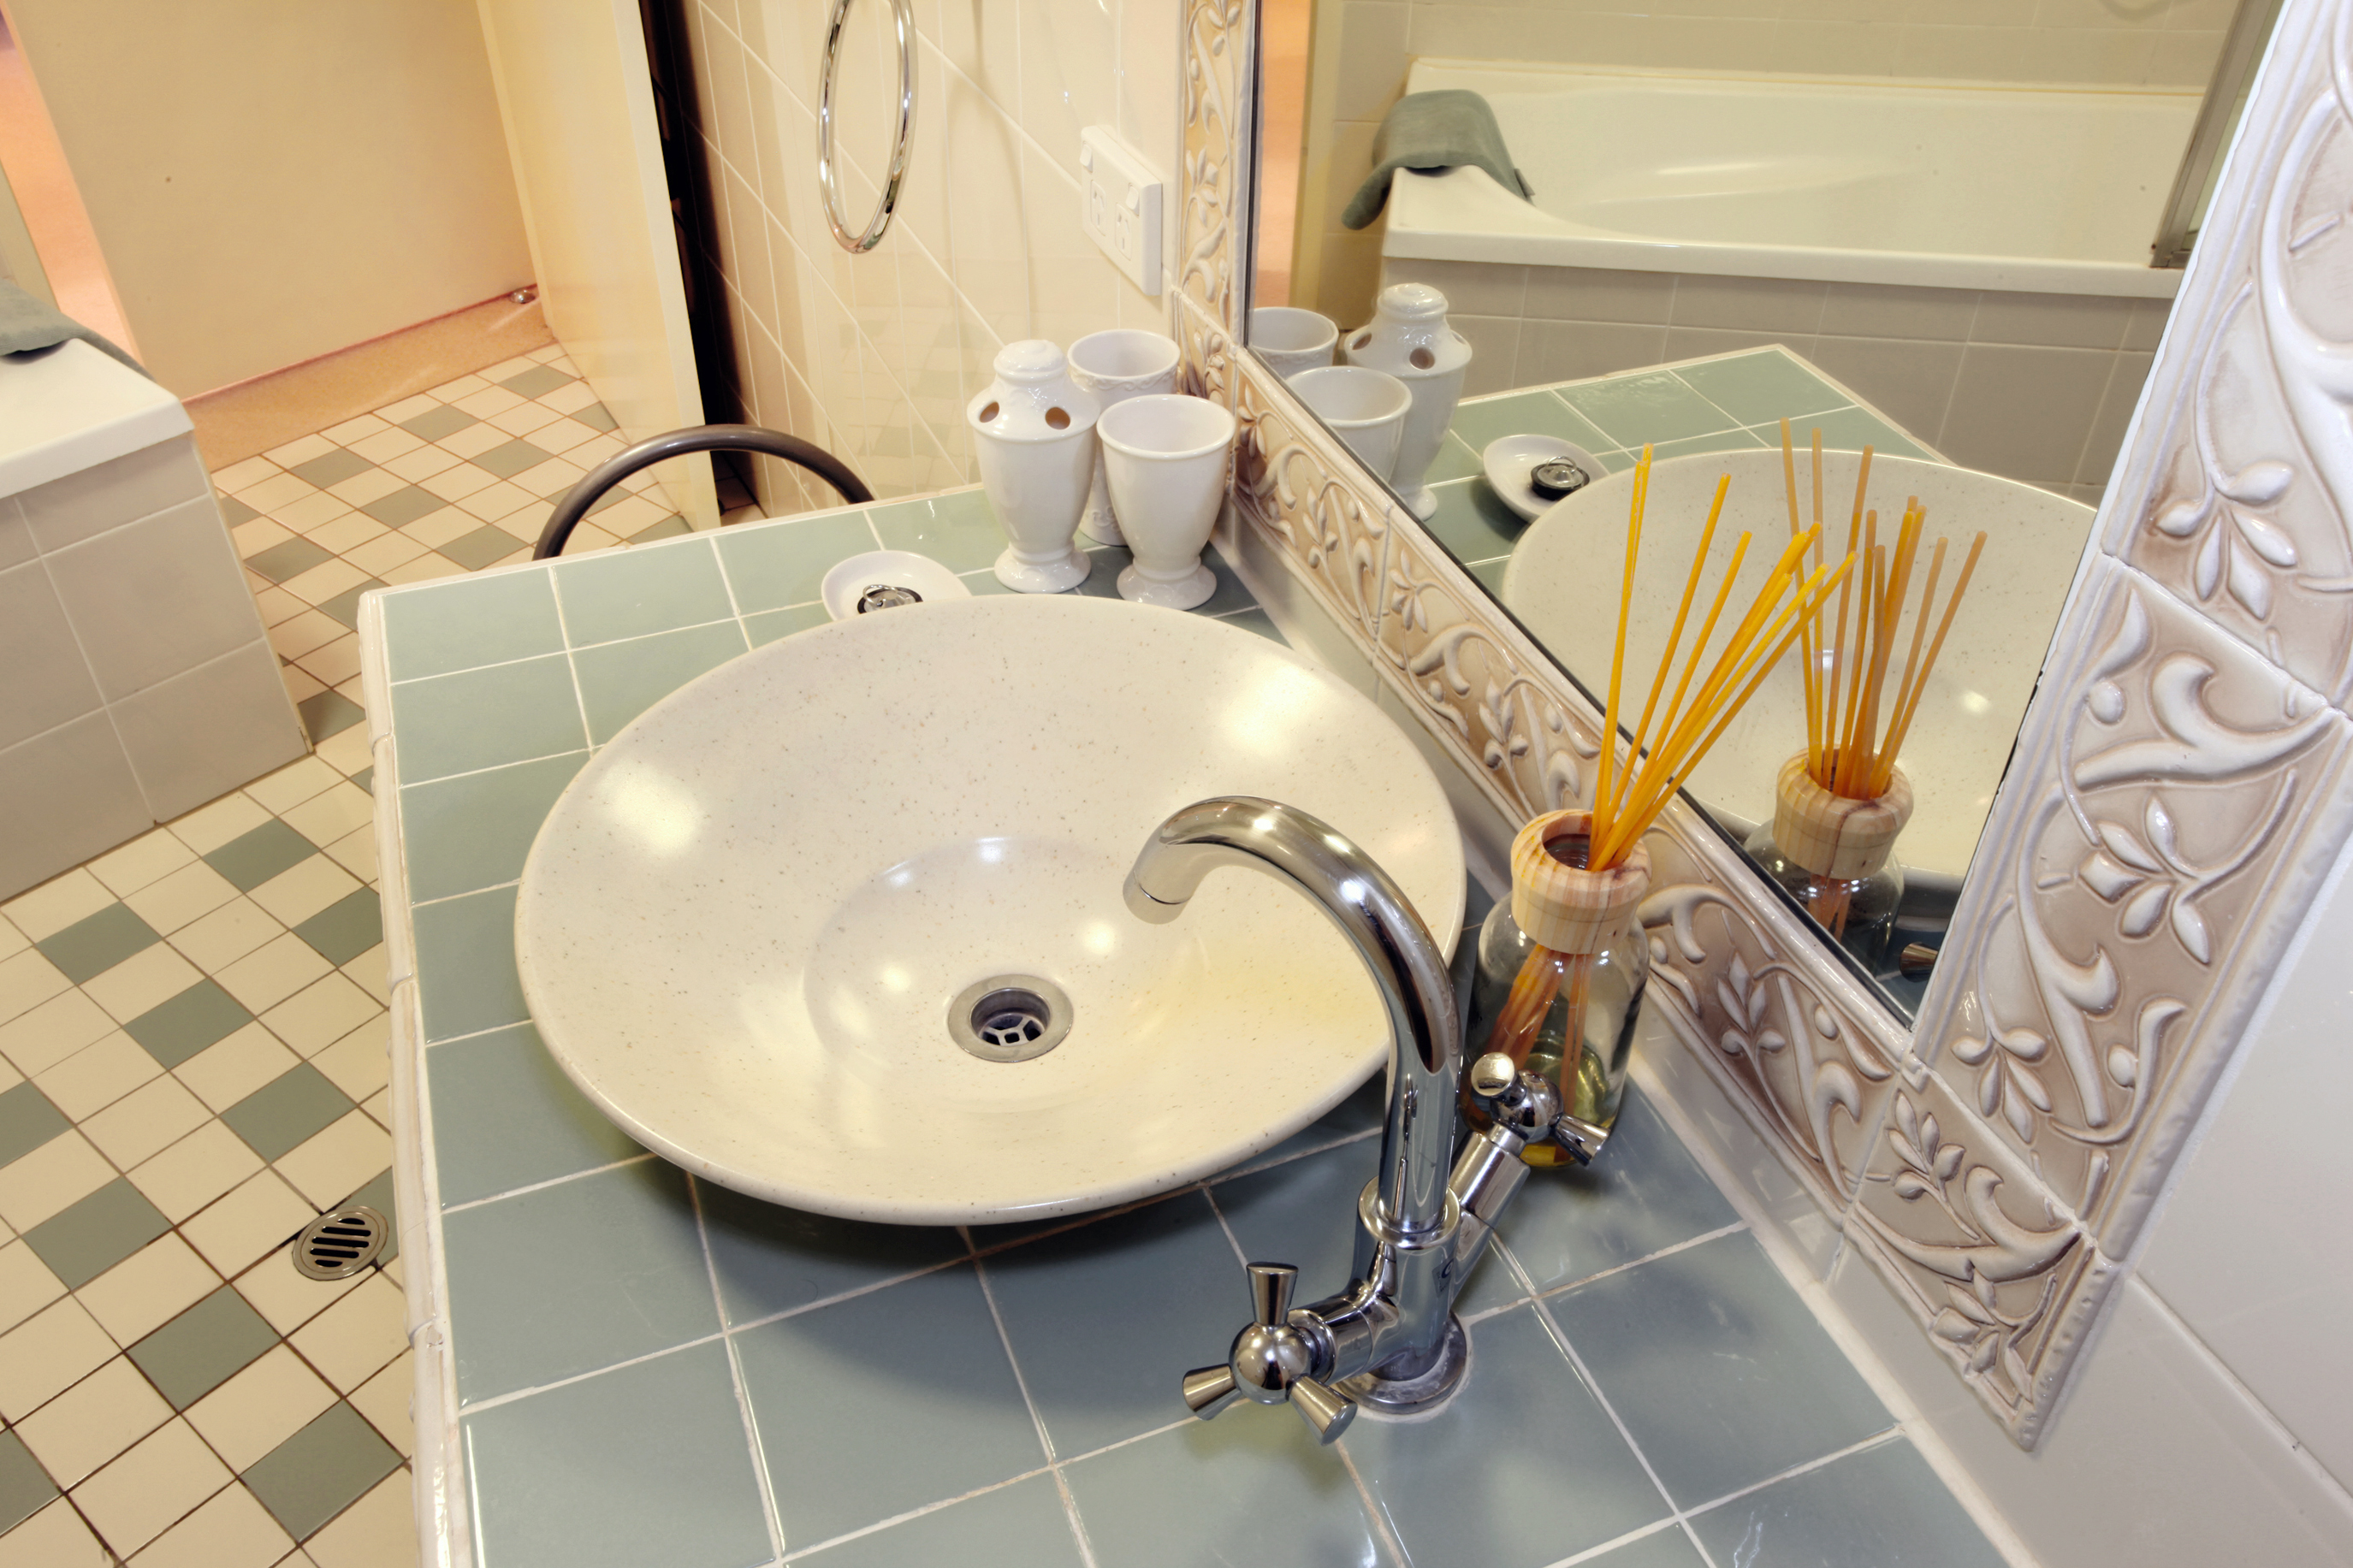 5 Things To Replace When Renovating Your Bathroom